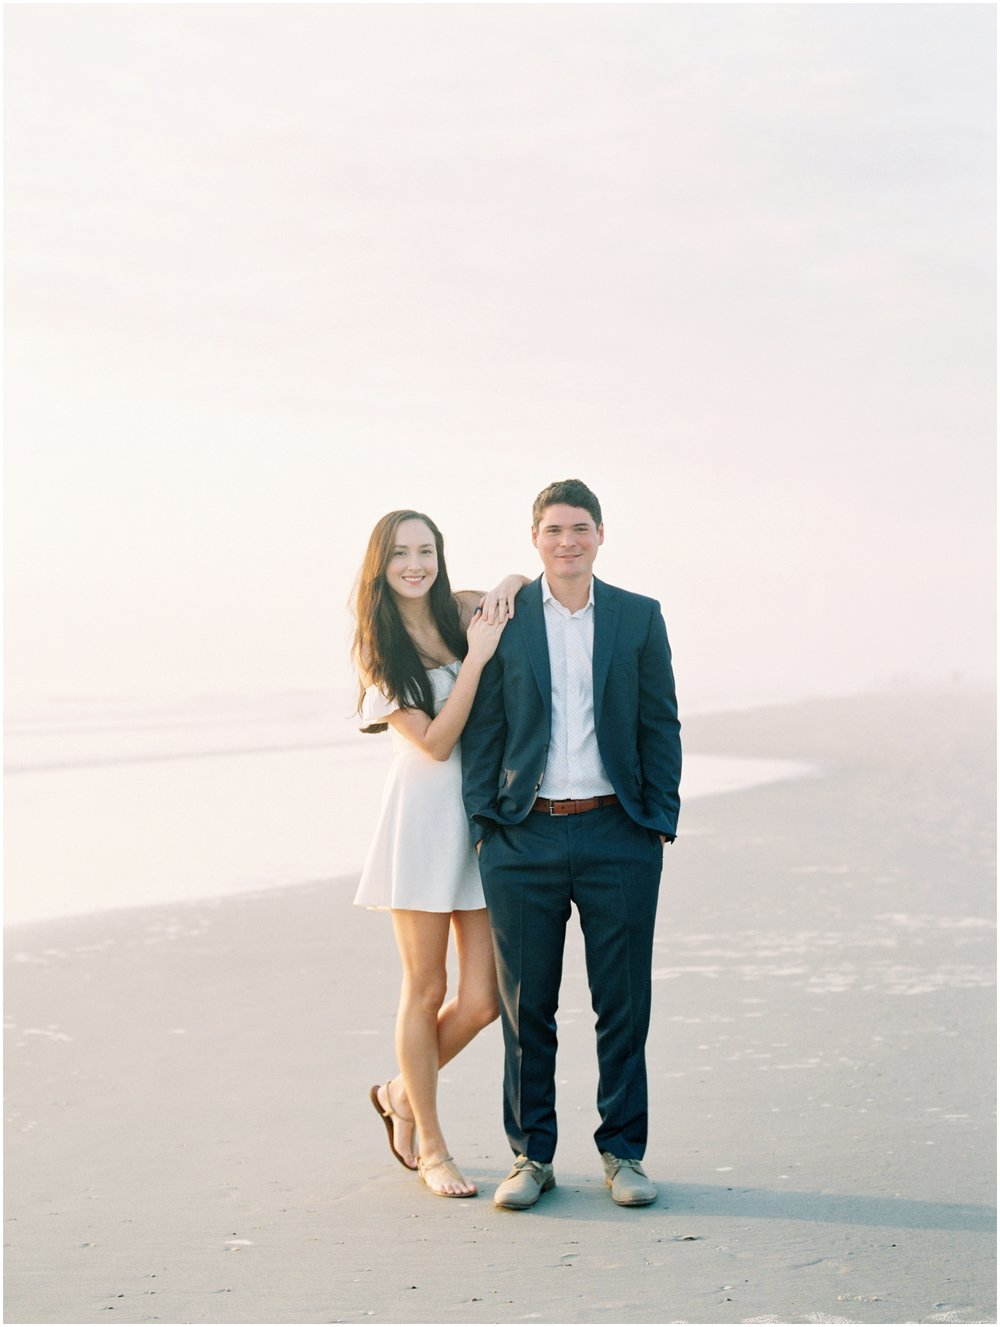 Lisa Silva Photography -Engagement Session at Neptune Beach, Florida- Jacksonville and North East Florida Fine Art Film Photographer_0005.jpg